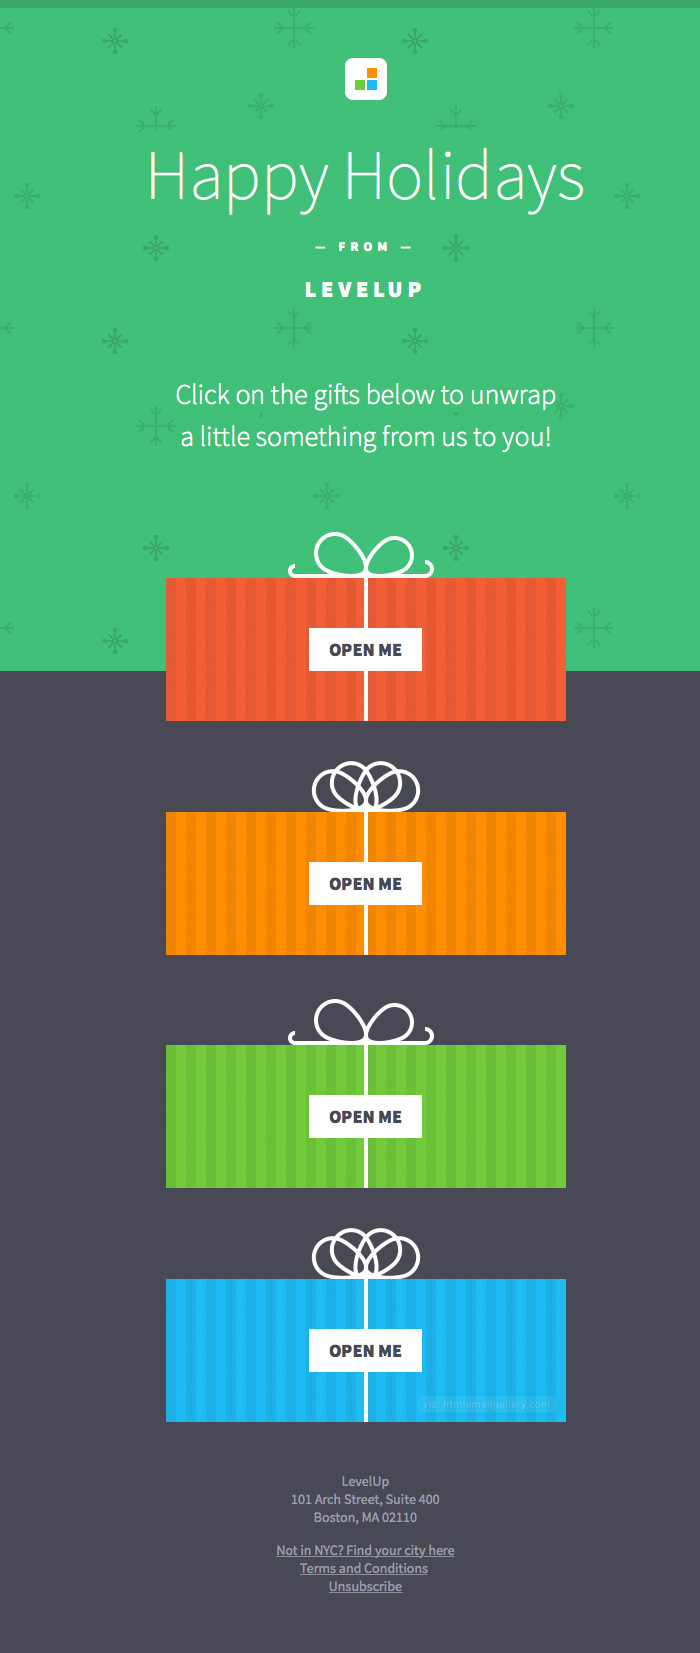 LevelUp Happy Holidays Gift email